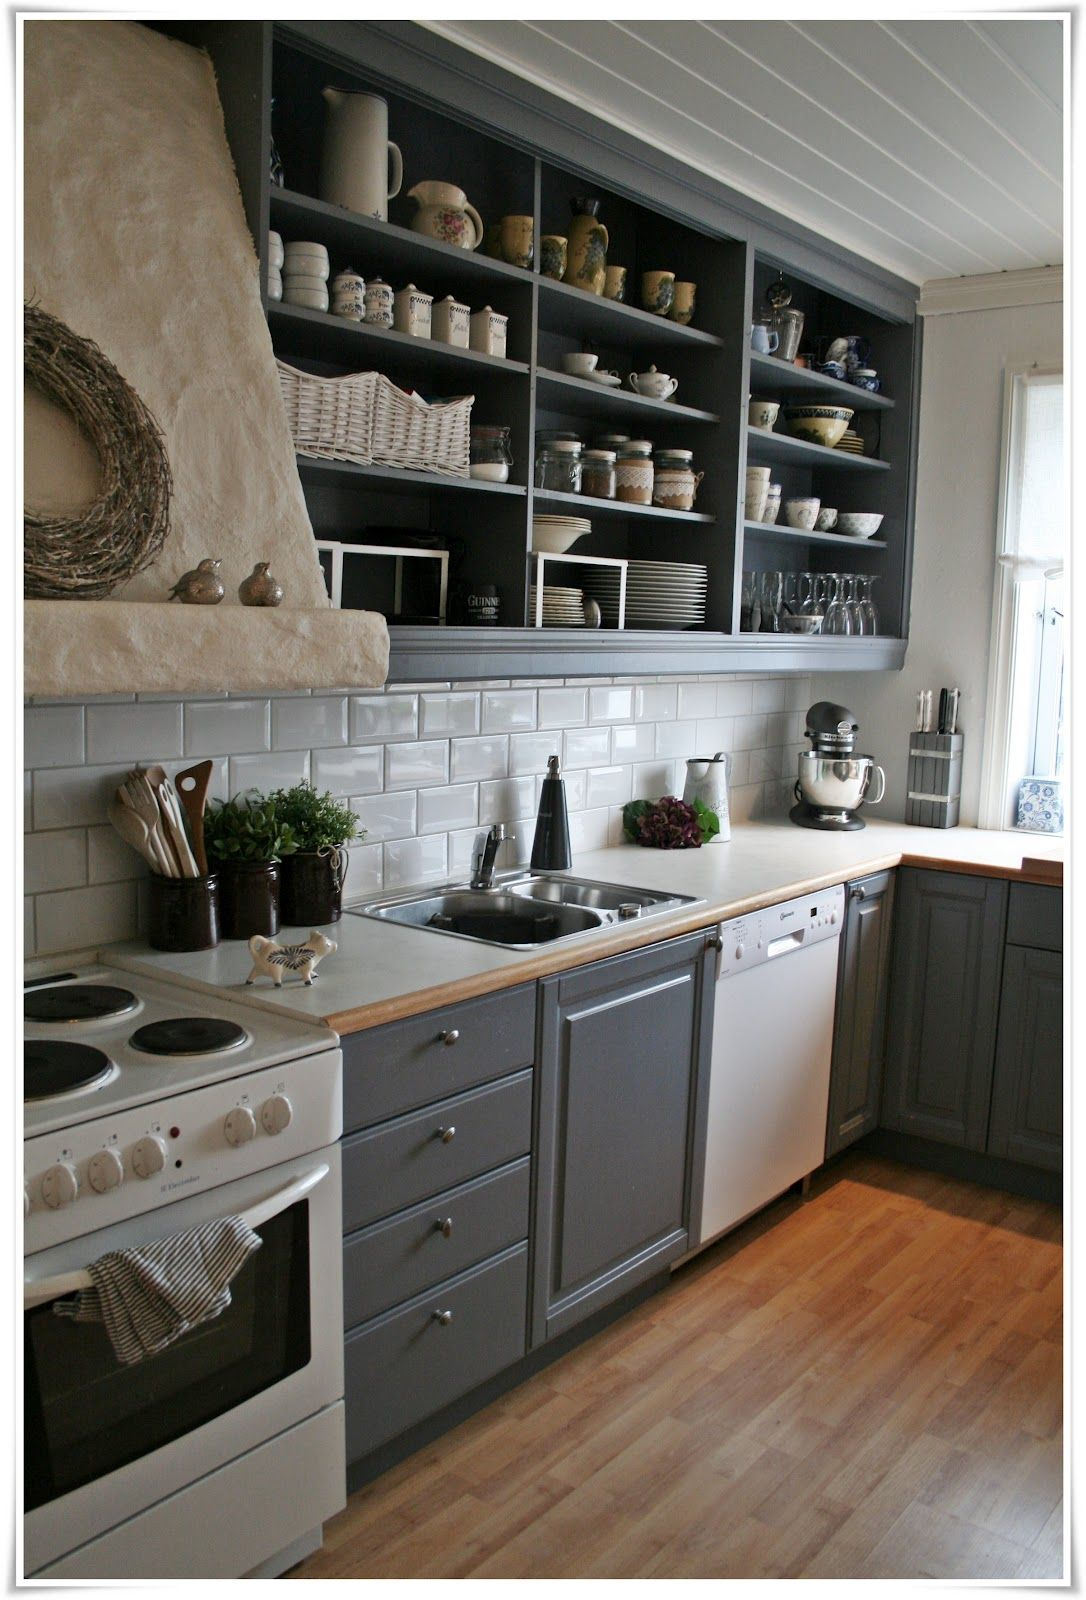 Ideas For A Great Open Shelf Kitchen Decoholic Home Kitchens Kitchen Cabinet Design Open Kitchen Cabinets